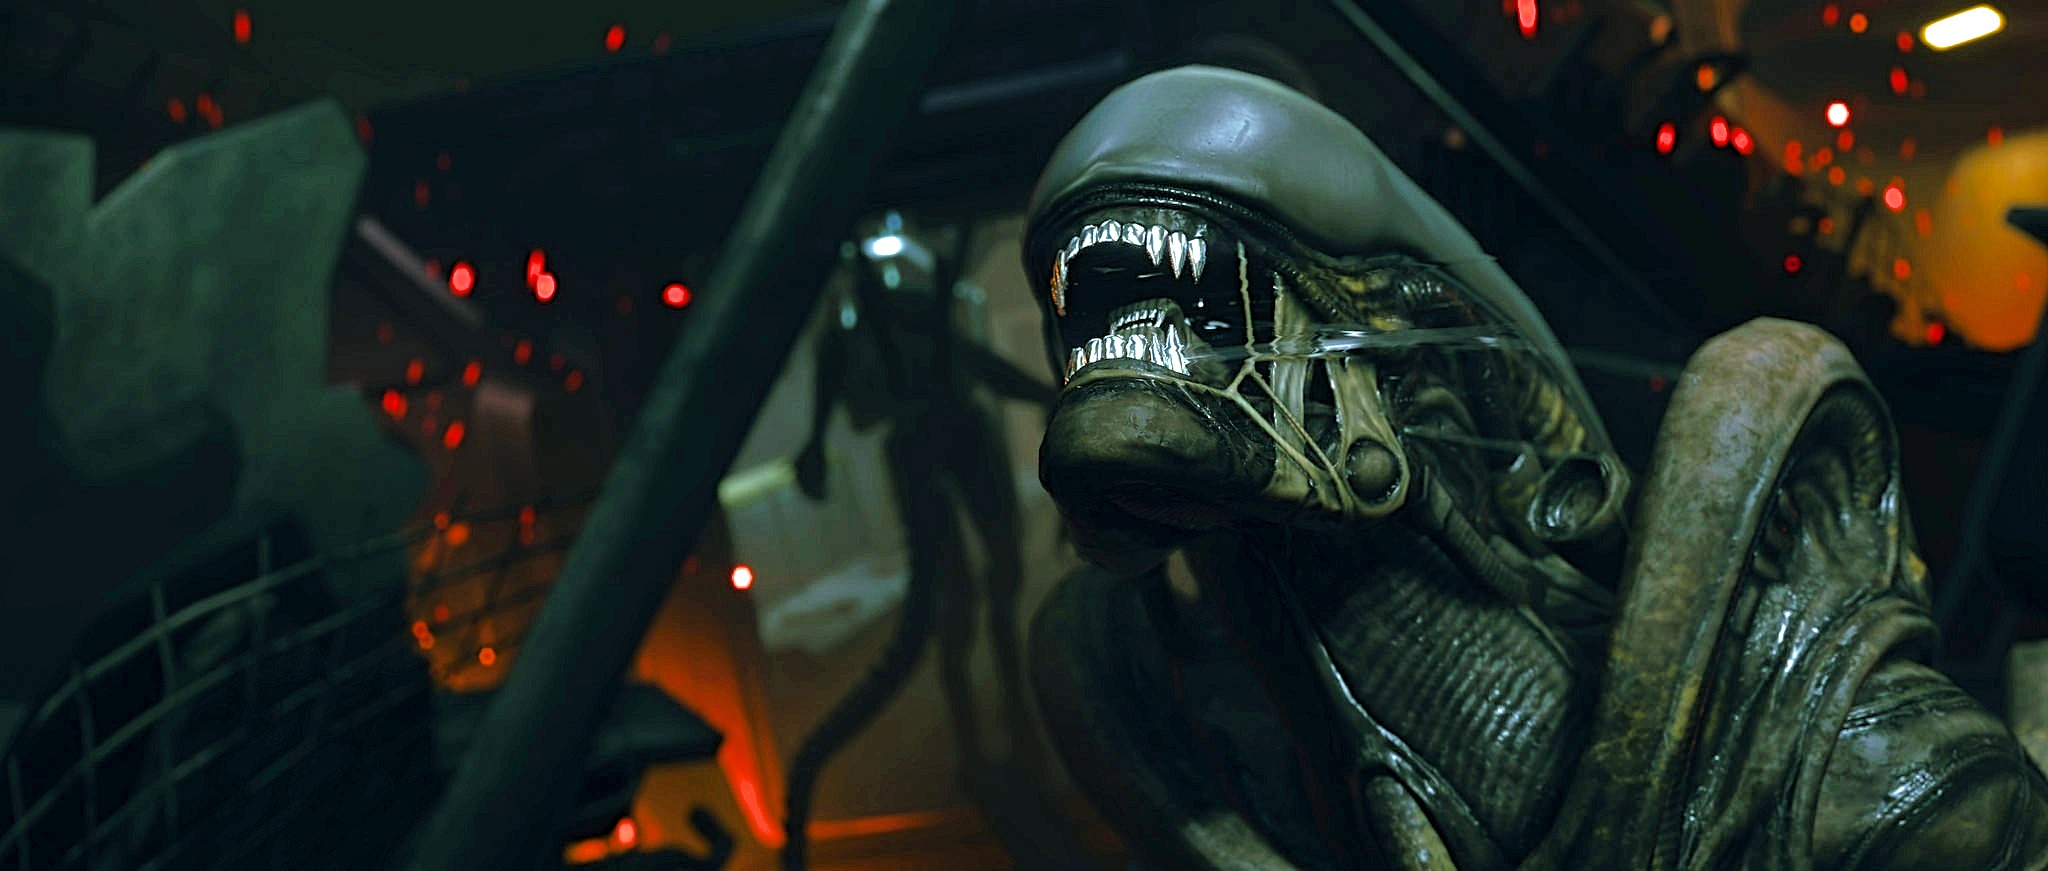 56УВРВ (3).jpg - Alien: Isolation